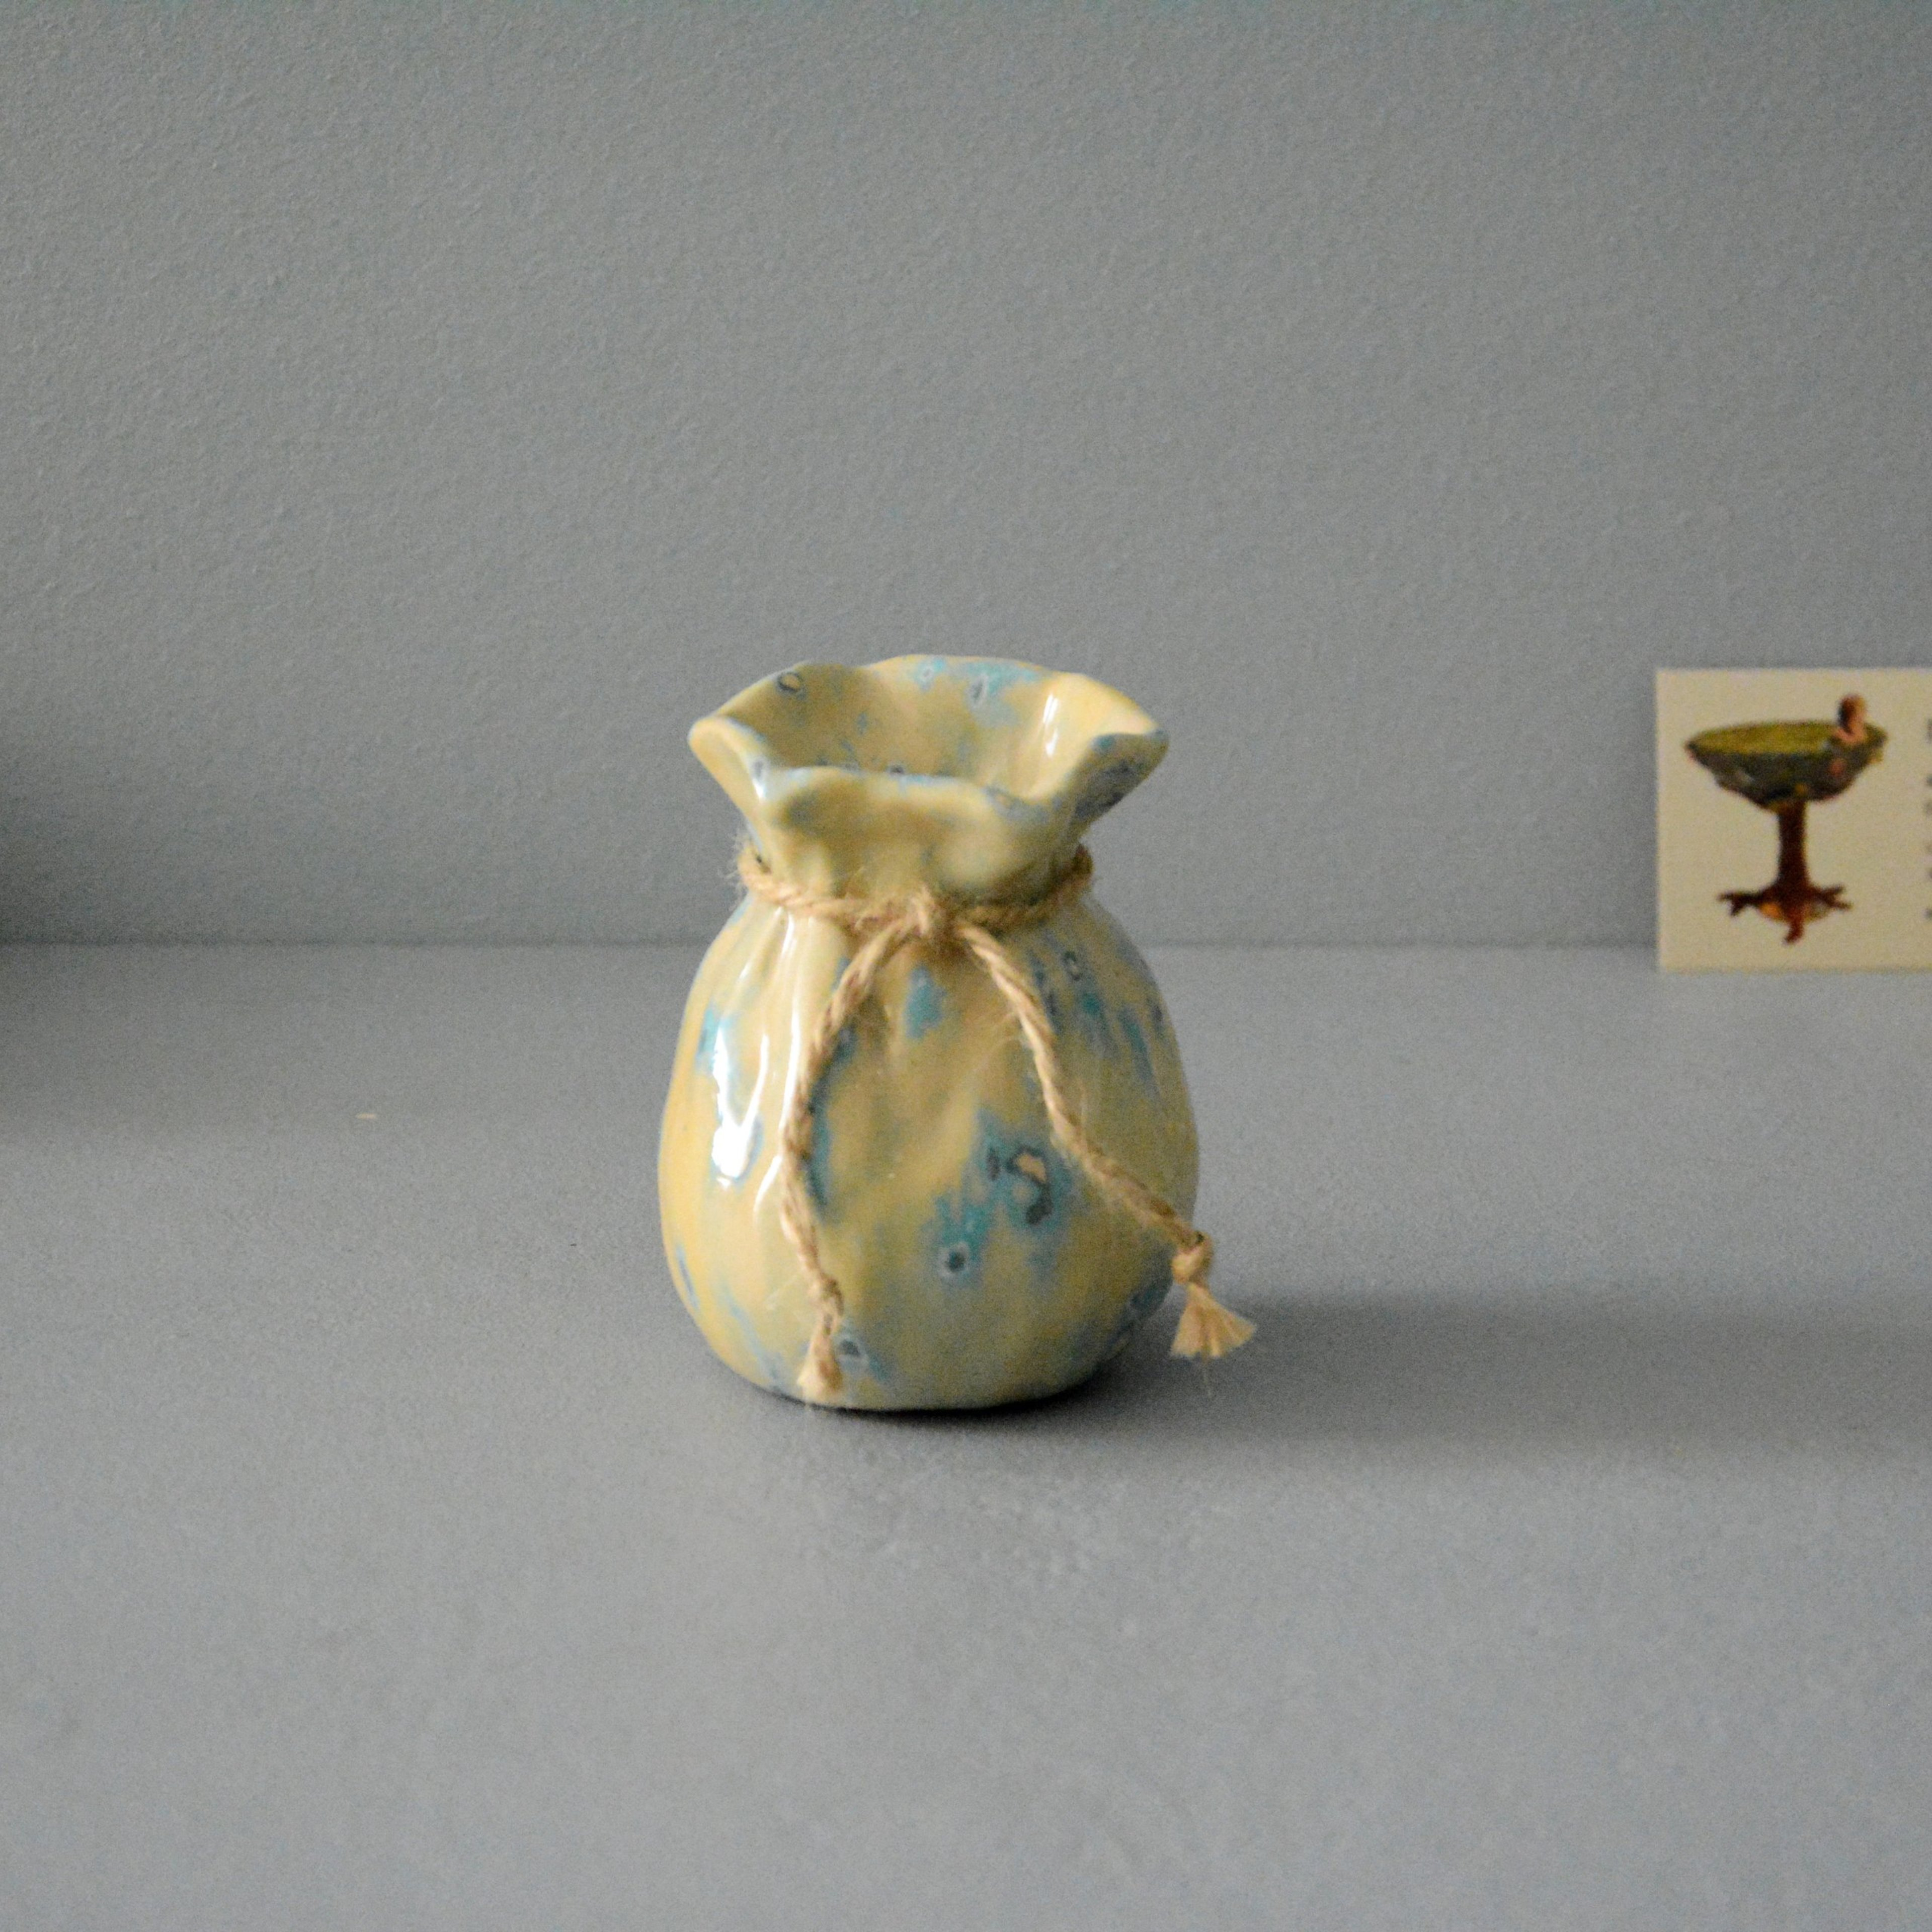 Candle vase «Beige Bagful», height - 9 cm, color - beige. Photo 1407-3840-3840.